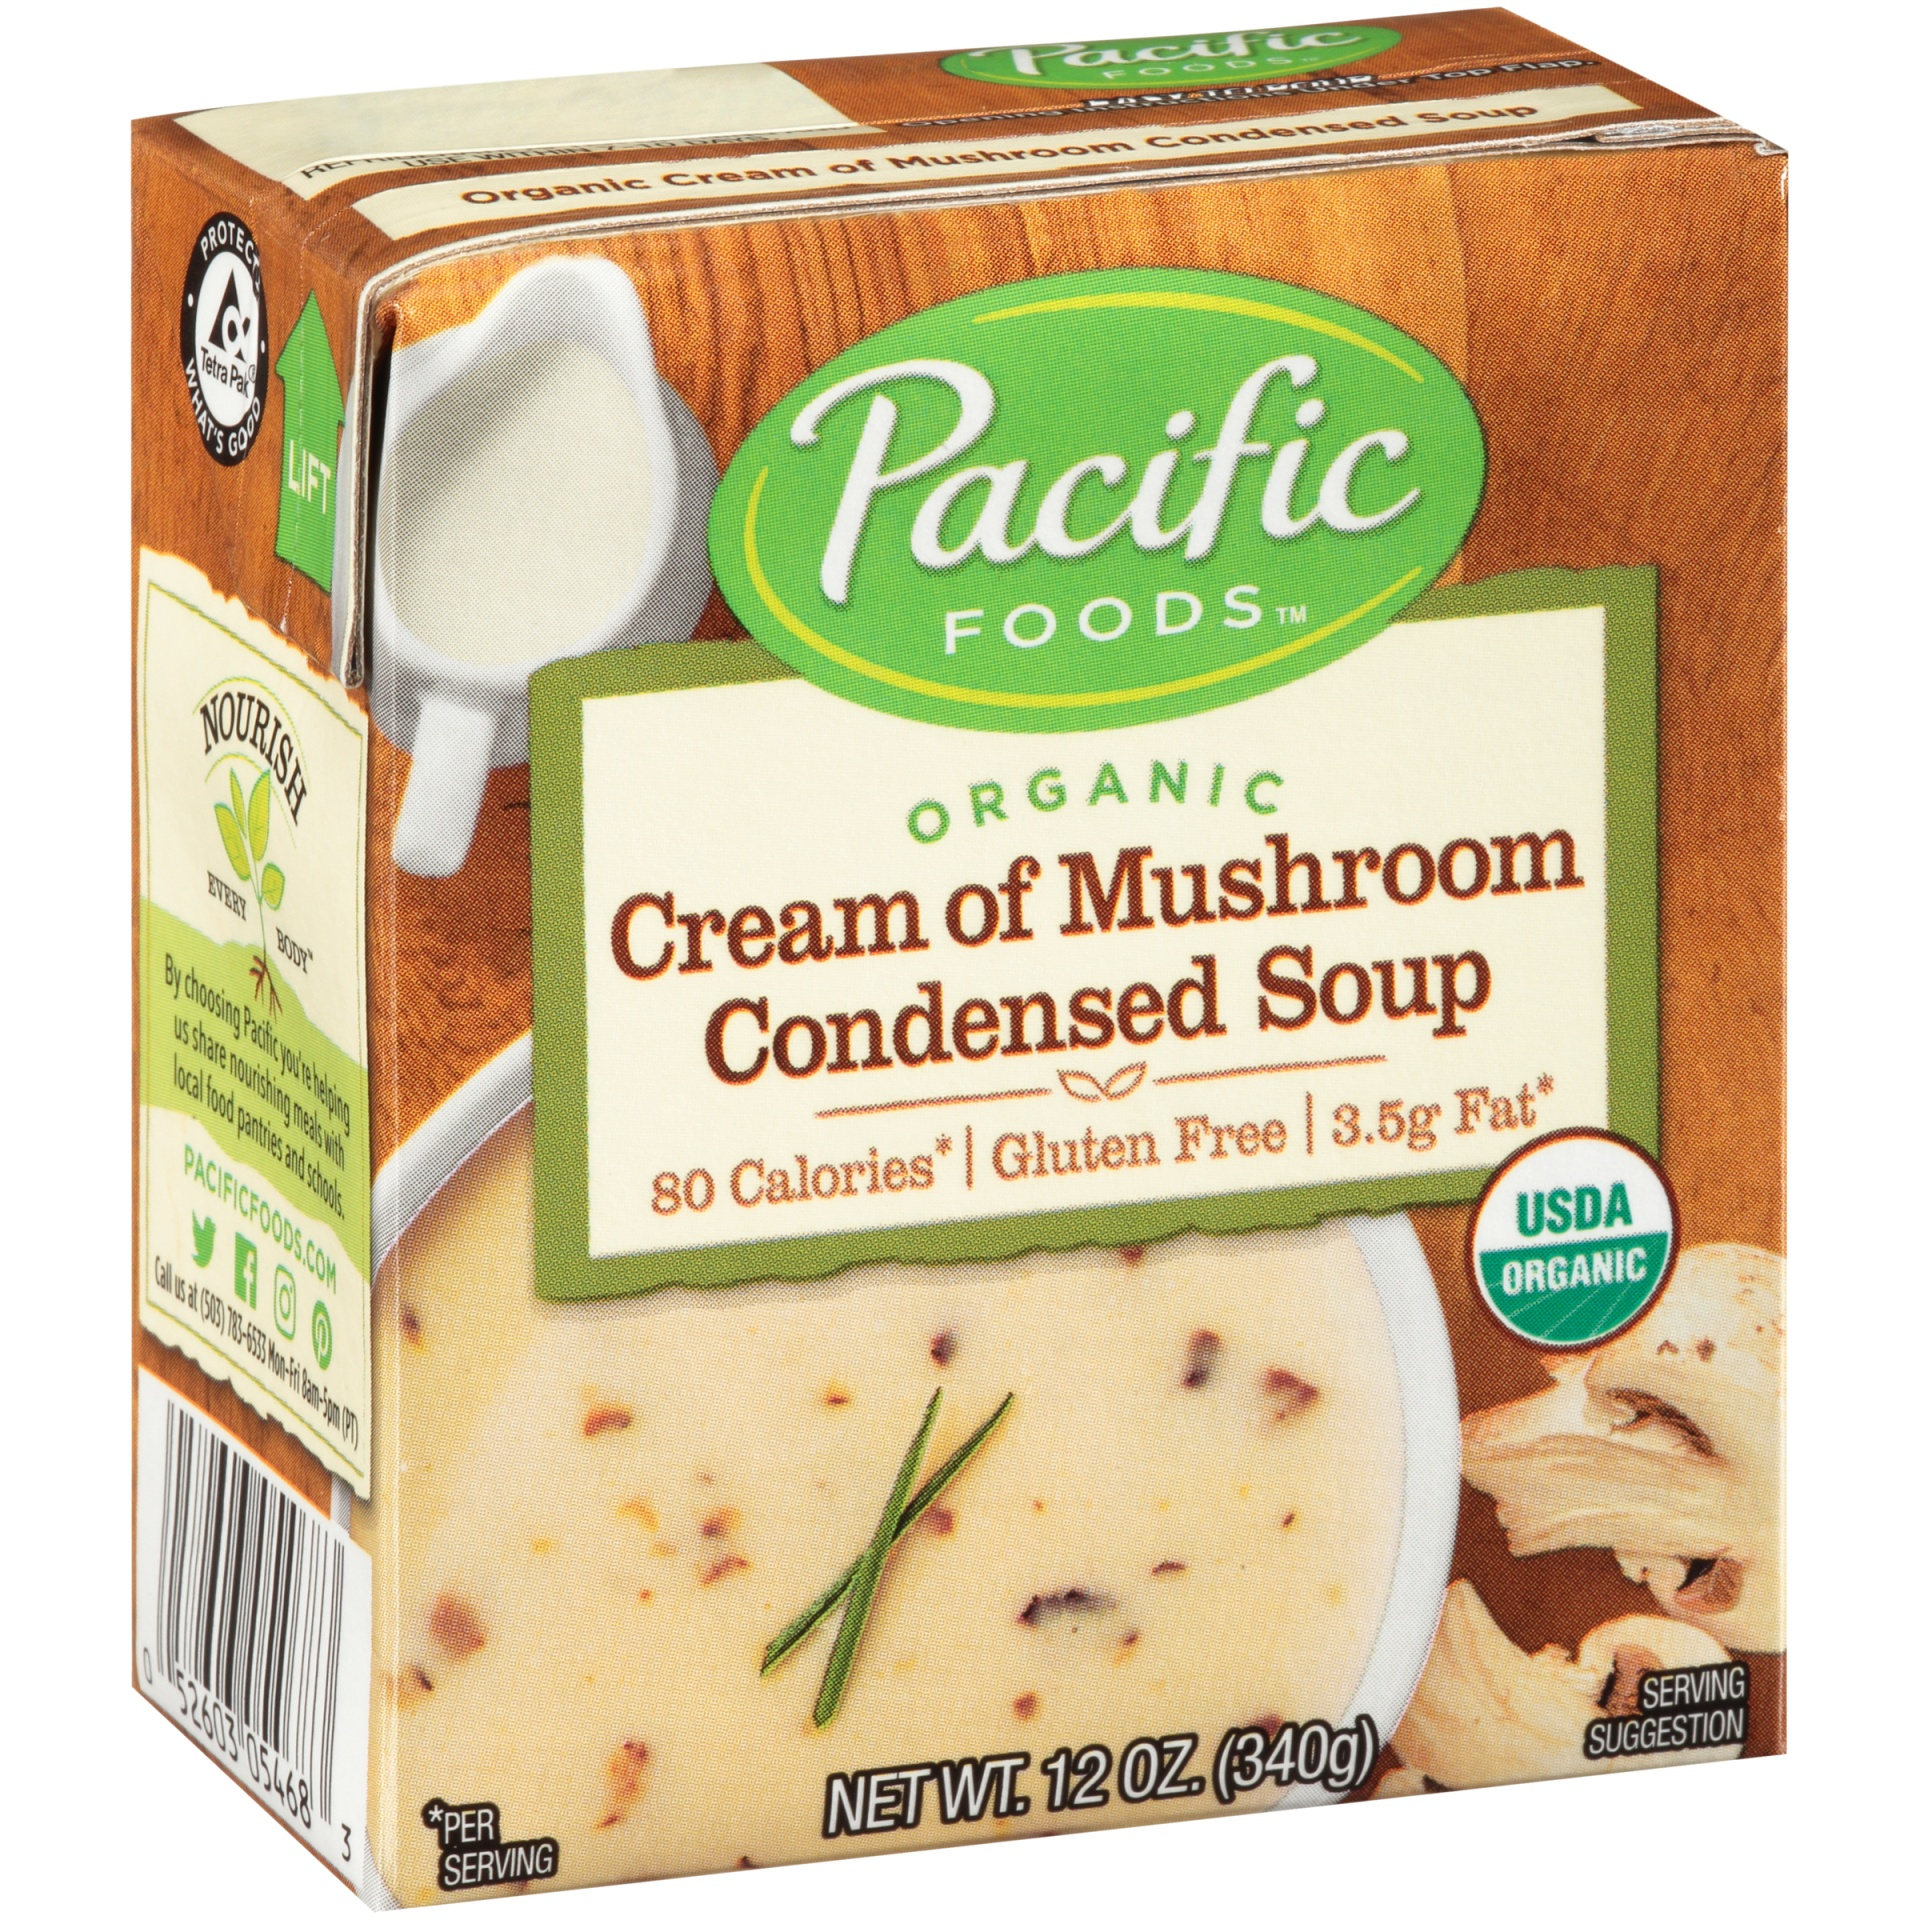 slide 1 of 9, Pacific Foods Cream of Mushroom Condensed Soup,